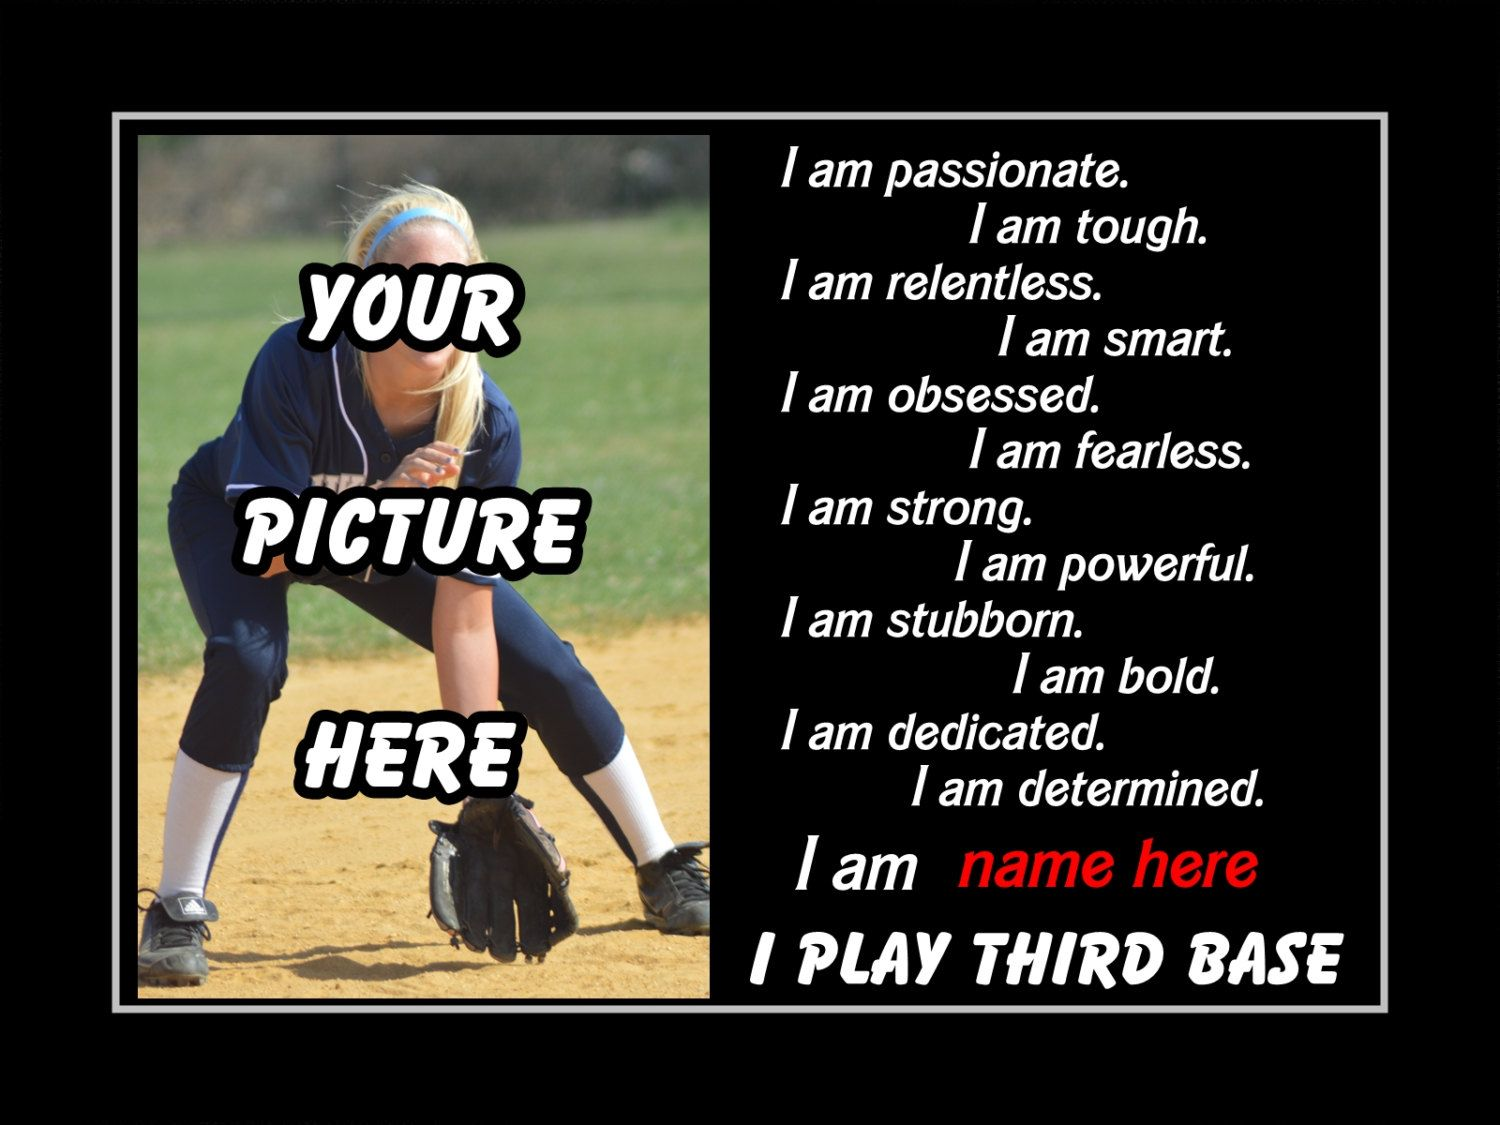 Softball friendship quotes quotesgram - Personalized Softball Custom Poster I Play Third Base Photo Quote Wall Art Print 11x14 Motivation